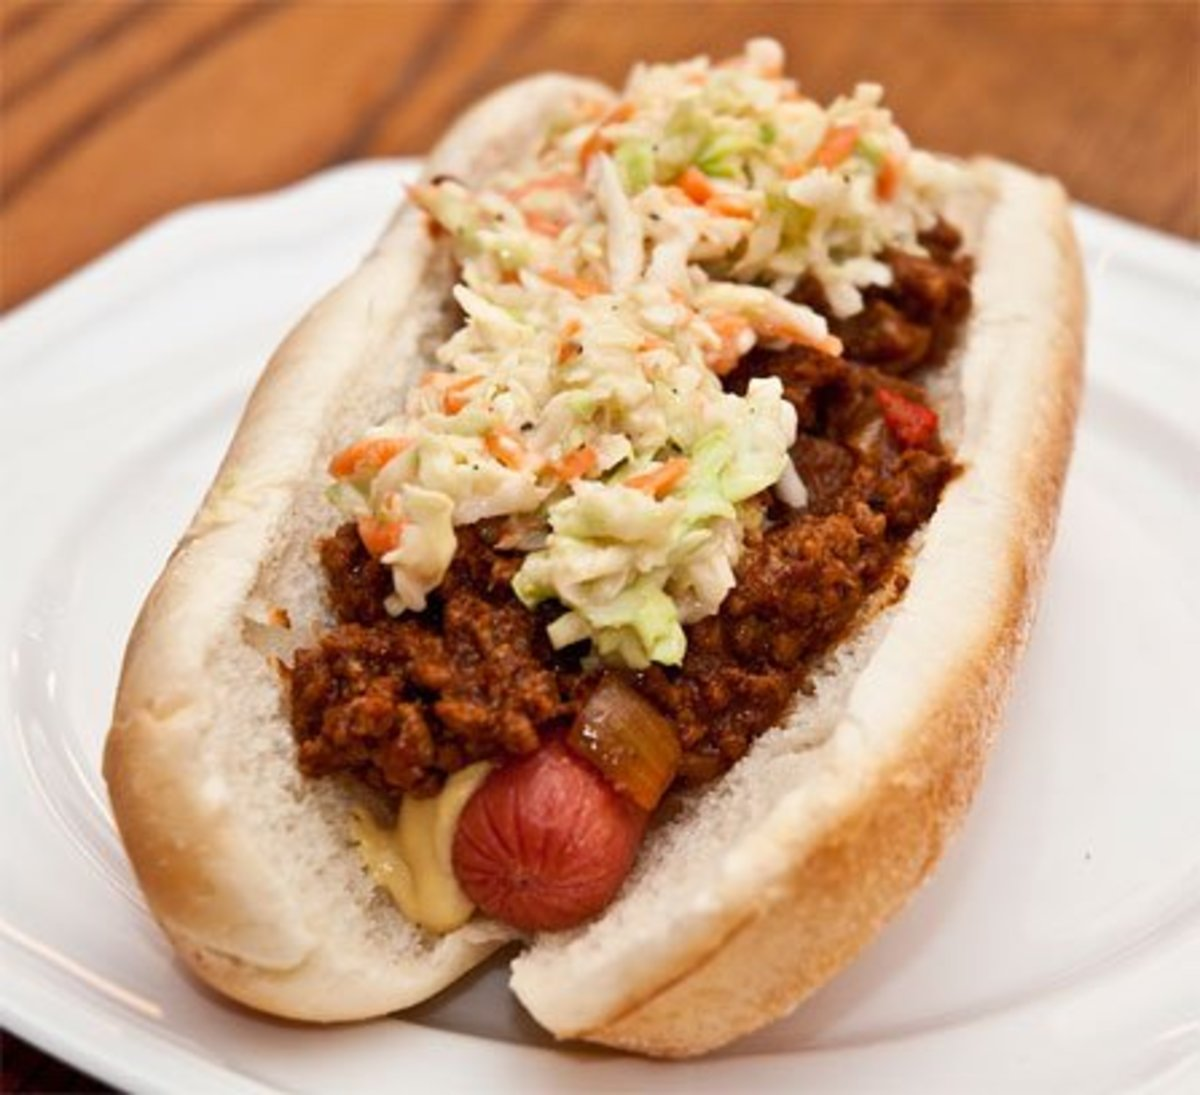 Grandma Hartman's West Virginia Hot Dog Chili